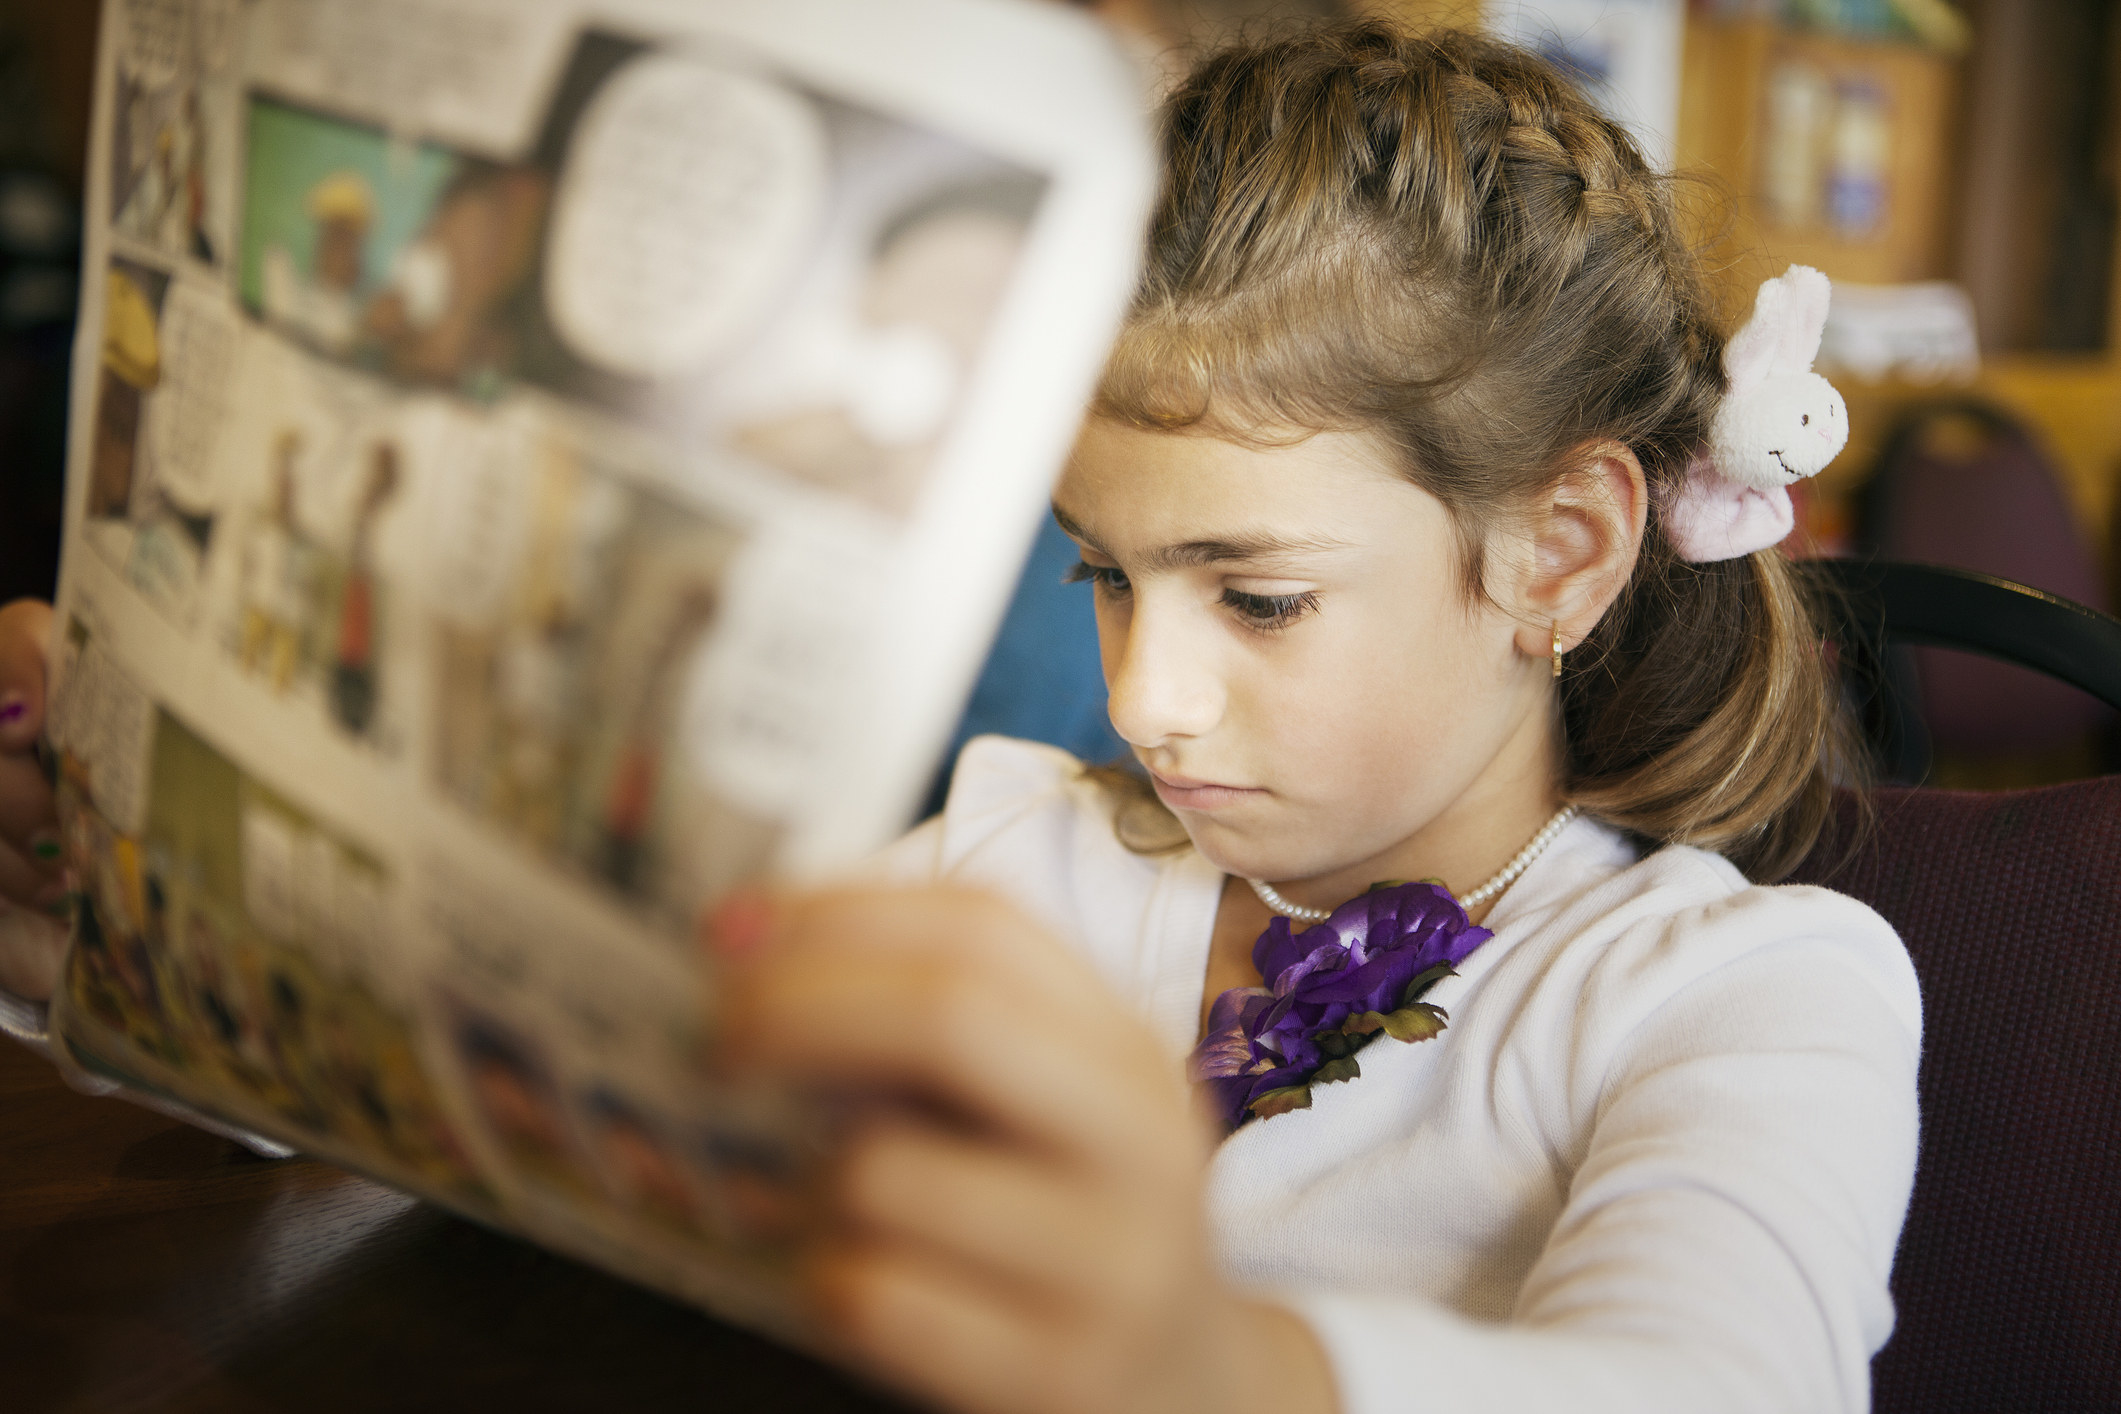 A stock image of a little girl reading the Sunday comics